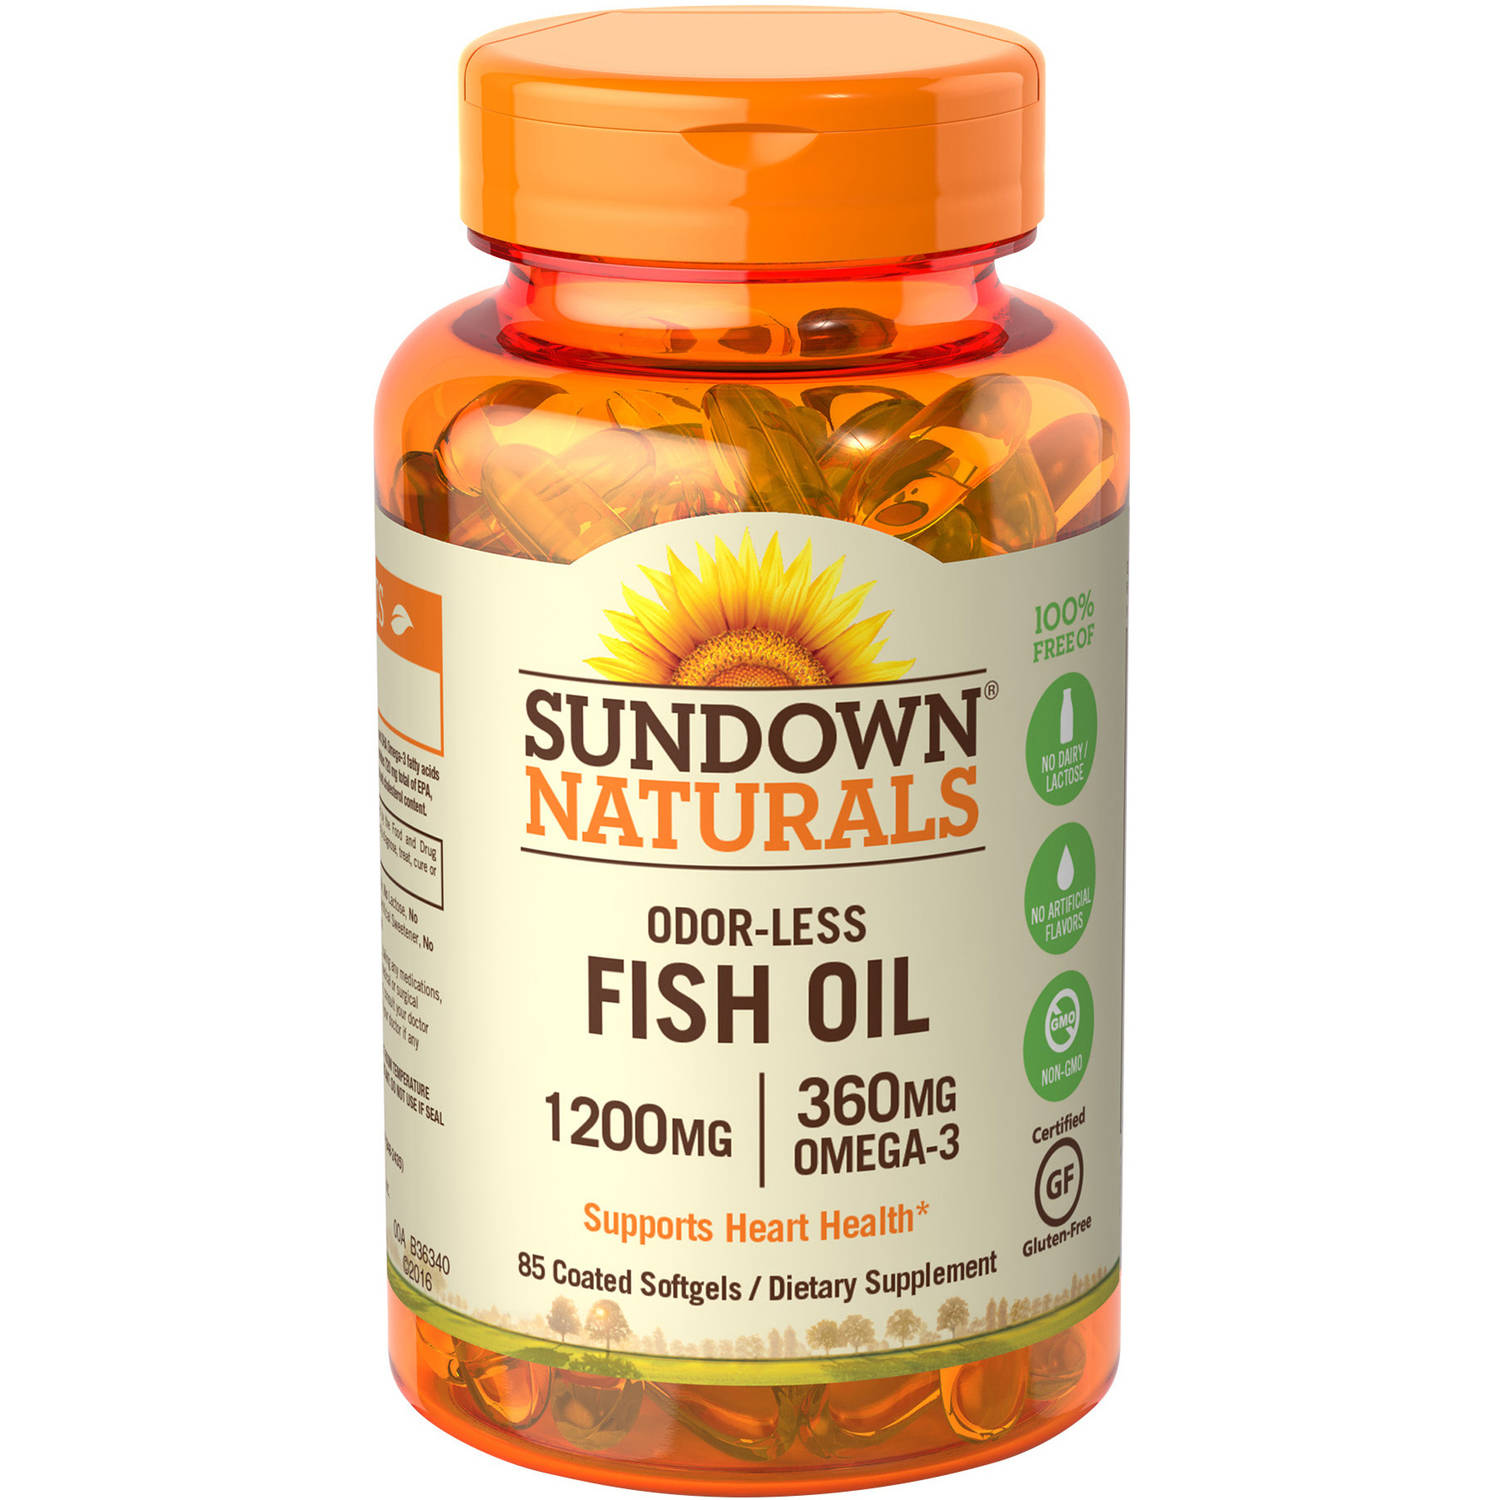 Sundown Naturals Odorless Omega-3 Fish Oil Dietary Supplement Softgels, 1200mg, 85 count